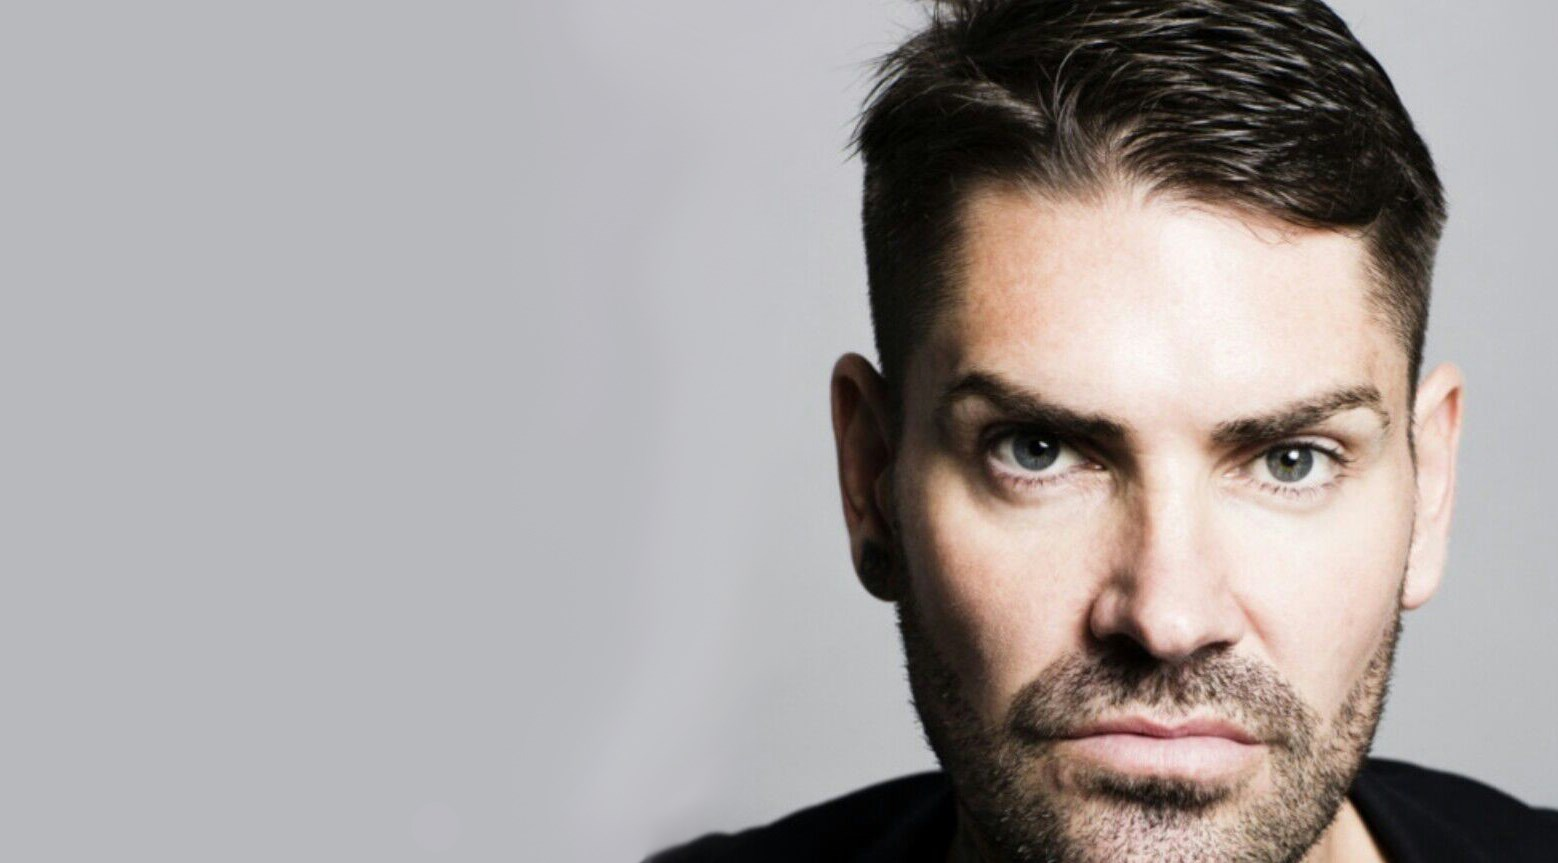 Boyzone star joins bikers for charity event